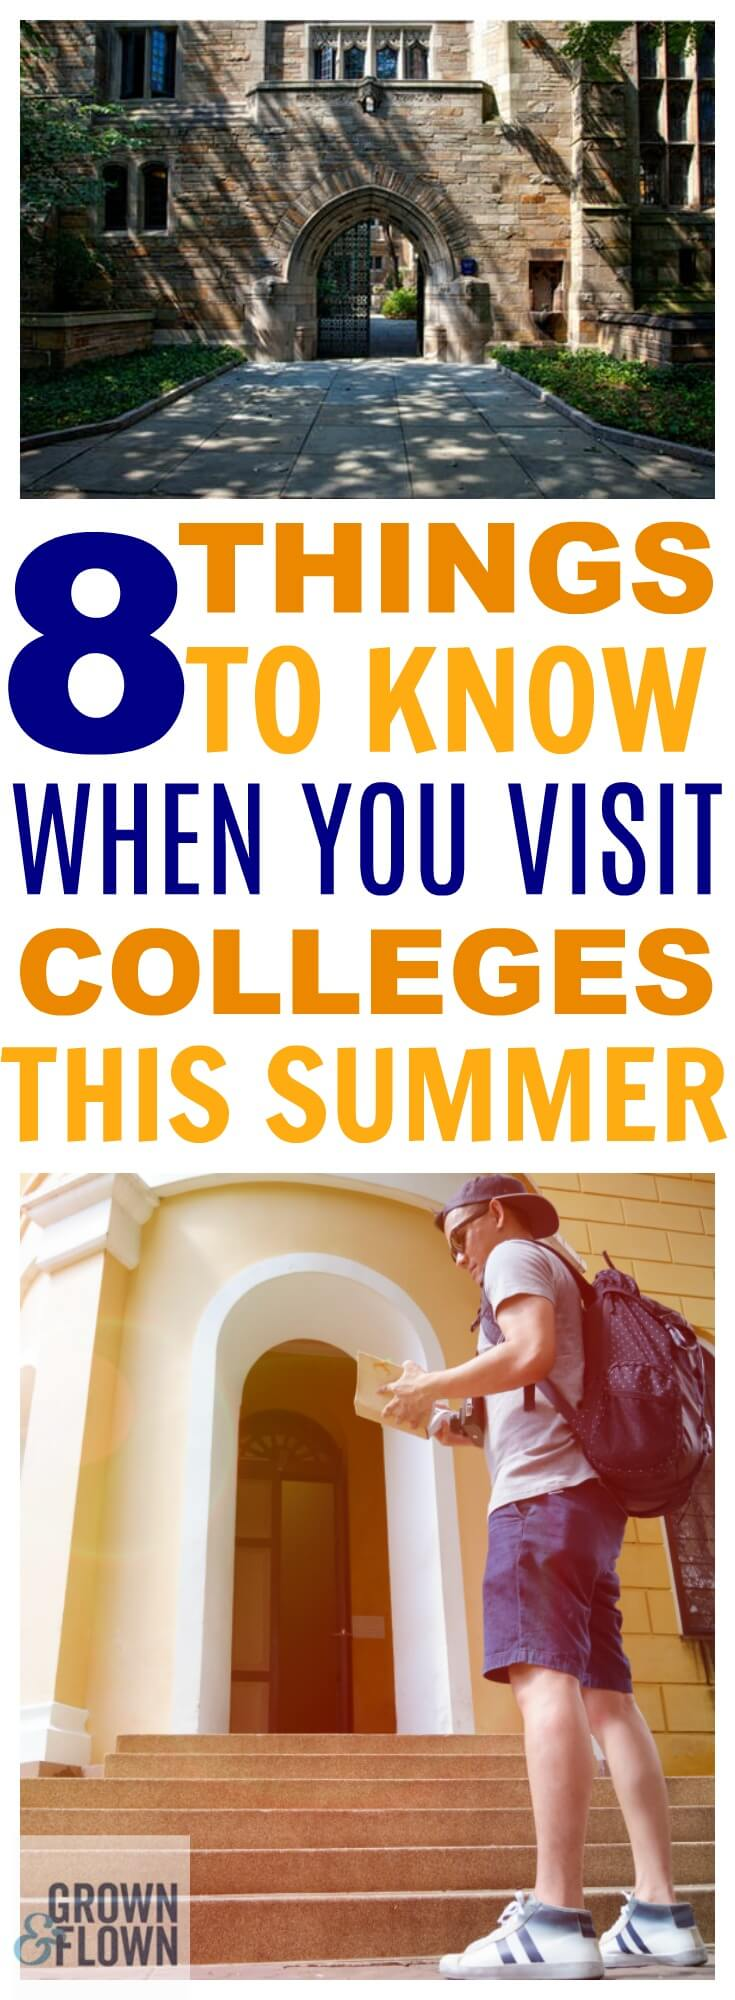 If you're getting ready to visit college campuses with your teen this summer, then you need to know these 8 things first. These tips and tricks to make college campus visits a success will help you accomplish everything on your checklist while you're there. #college #choosingcolleges #collegelife #campus #schoolshopping #collegeacceptance #collegecampus #teens #collegekids #parenting